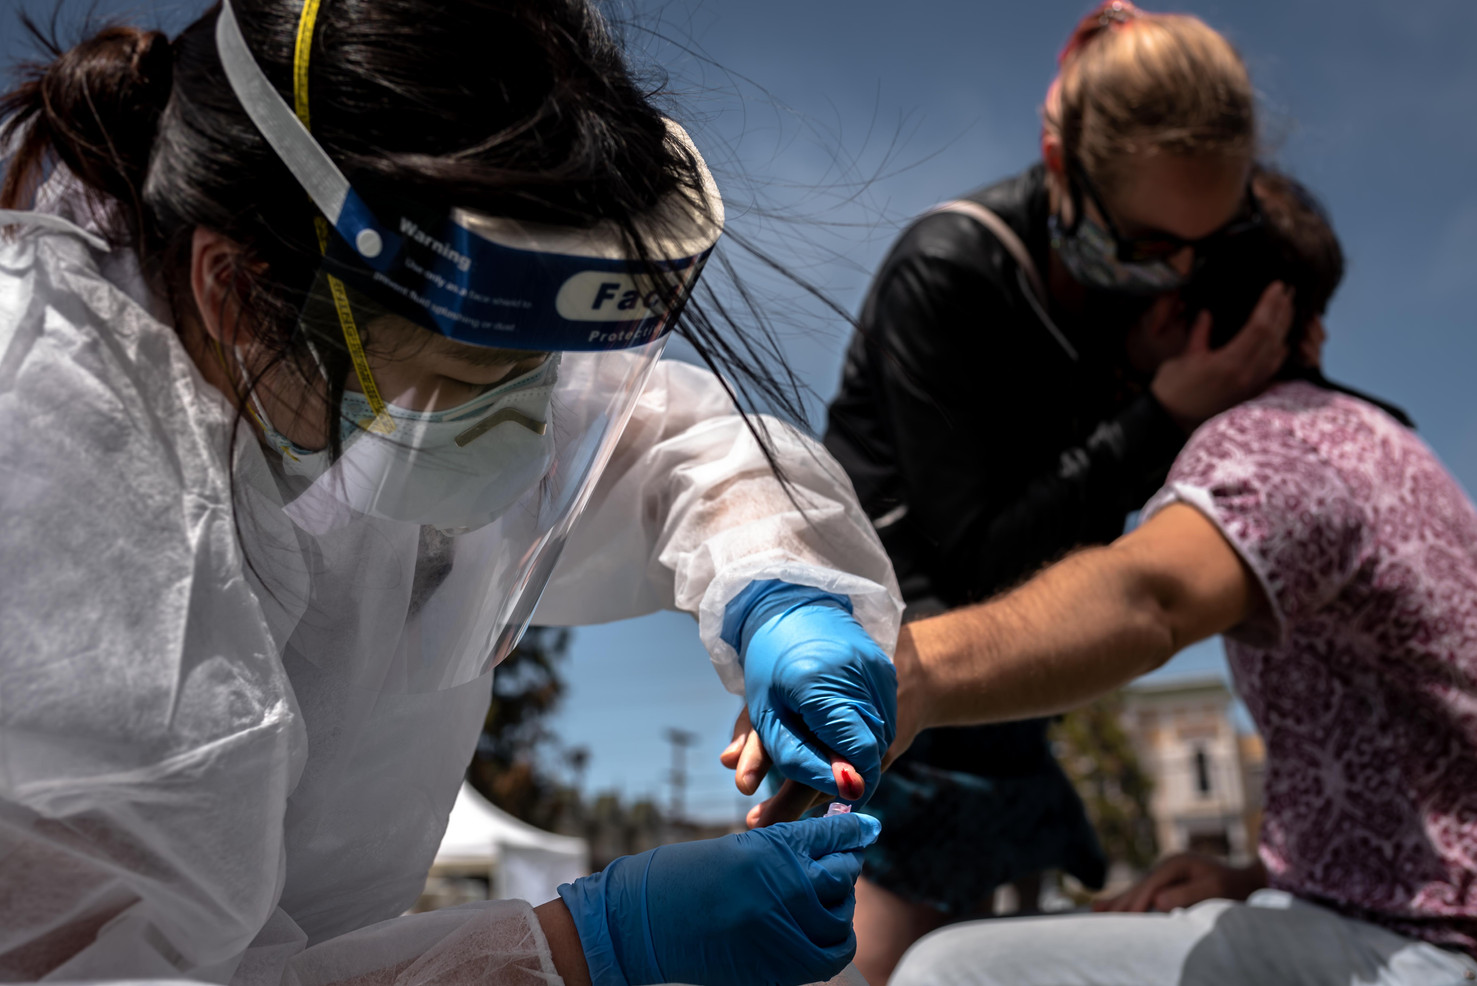 CCSF nusing student Audrey Jung collects blood samples from a squeemish George Kailas as he is comforted by his partner Emily Brunts during UCSF's mass COVID-19 testing study at Garfield Park. A comprehensive study of the virus's spread held by UC San Francisco researchers in partnership with San Francisco Department of Public Health and Zuckerberg General, mass testing is provided free of charge for the 5700 residents in a one mile square radius of the Mission district.